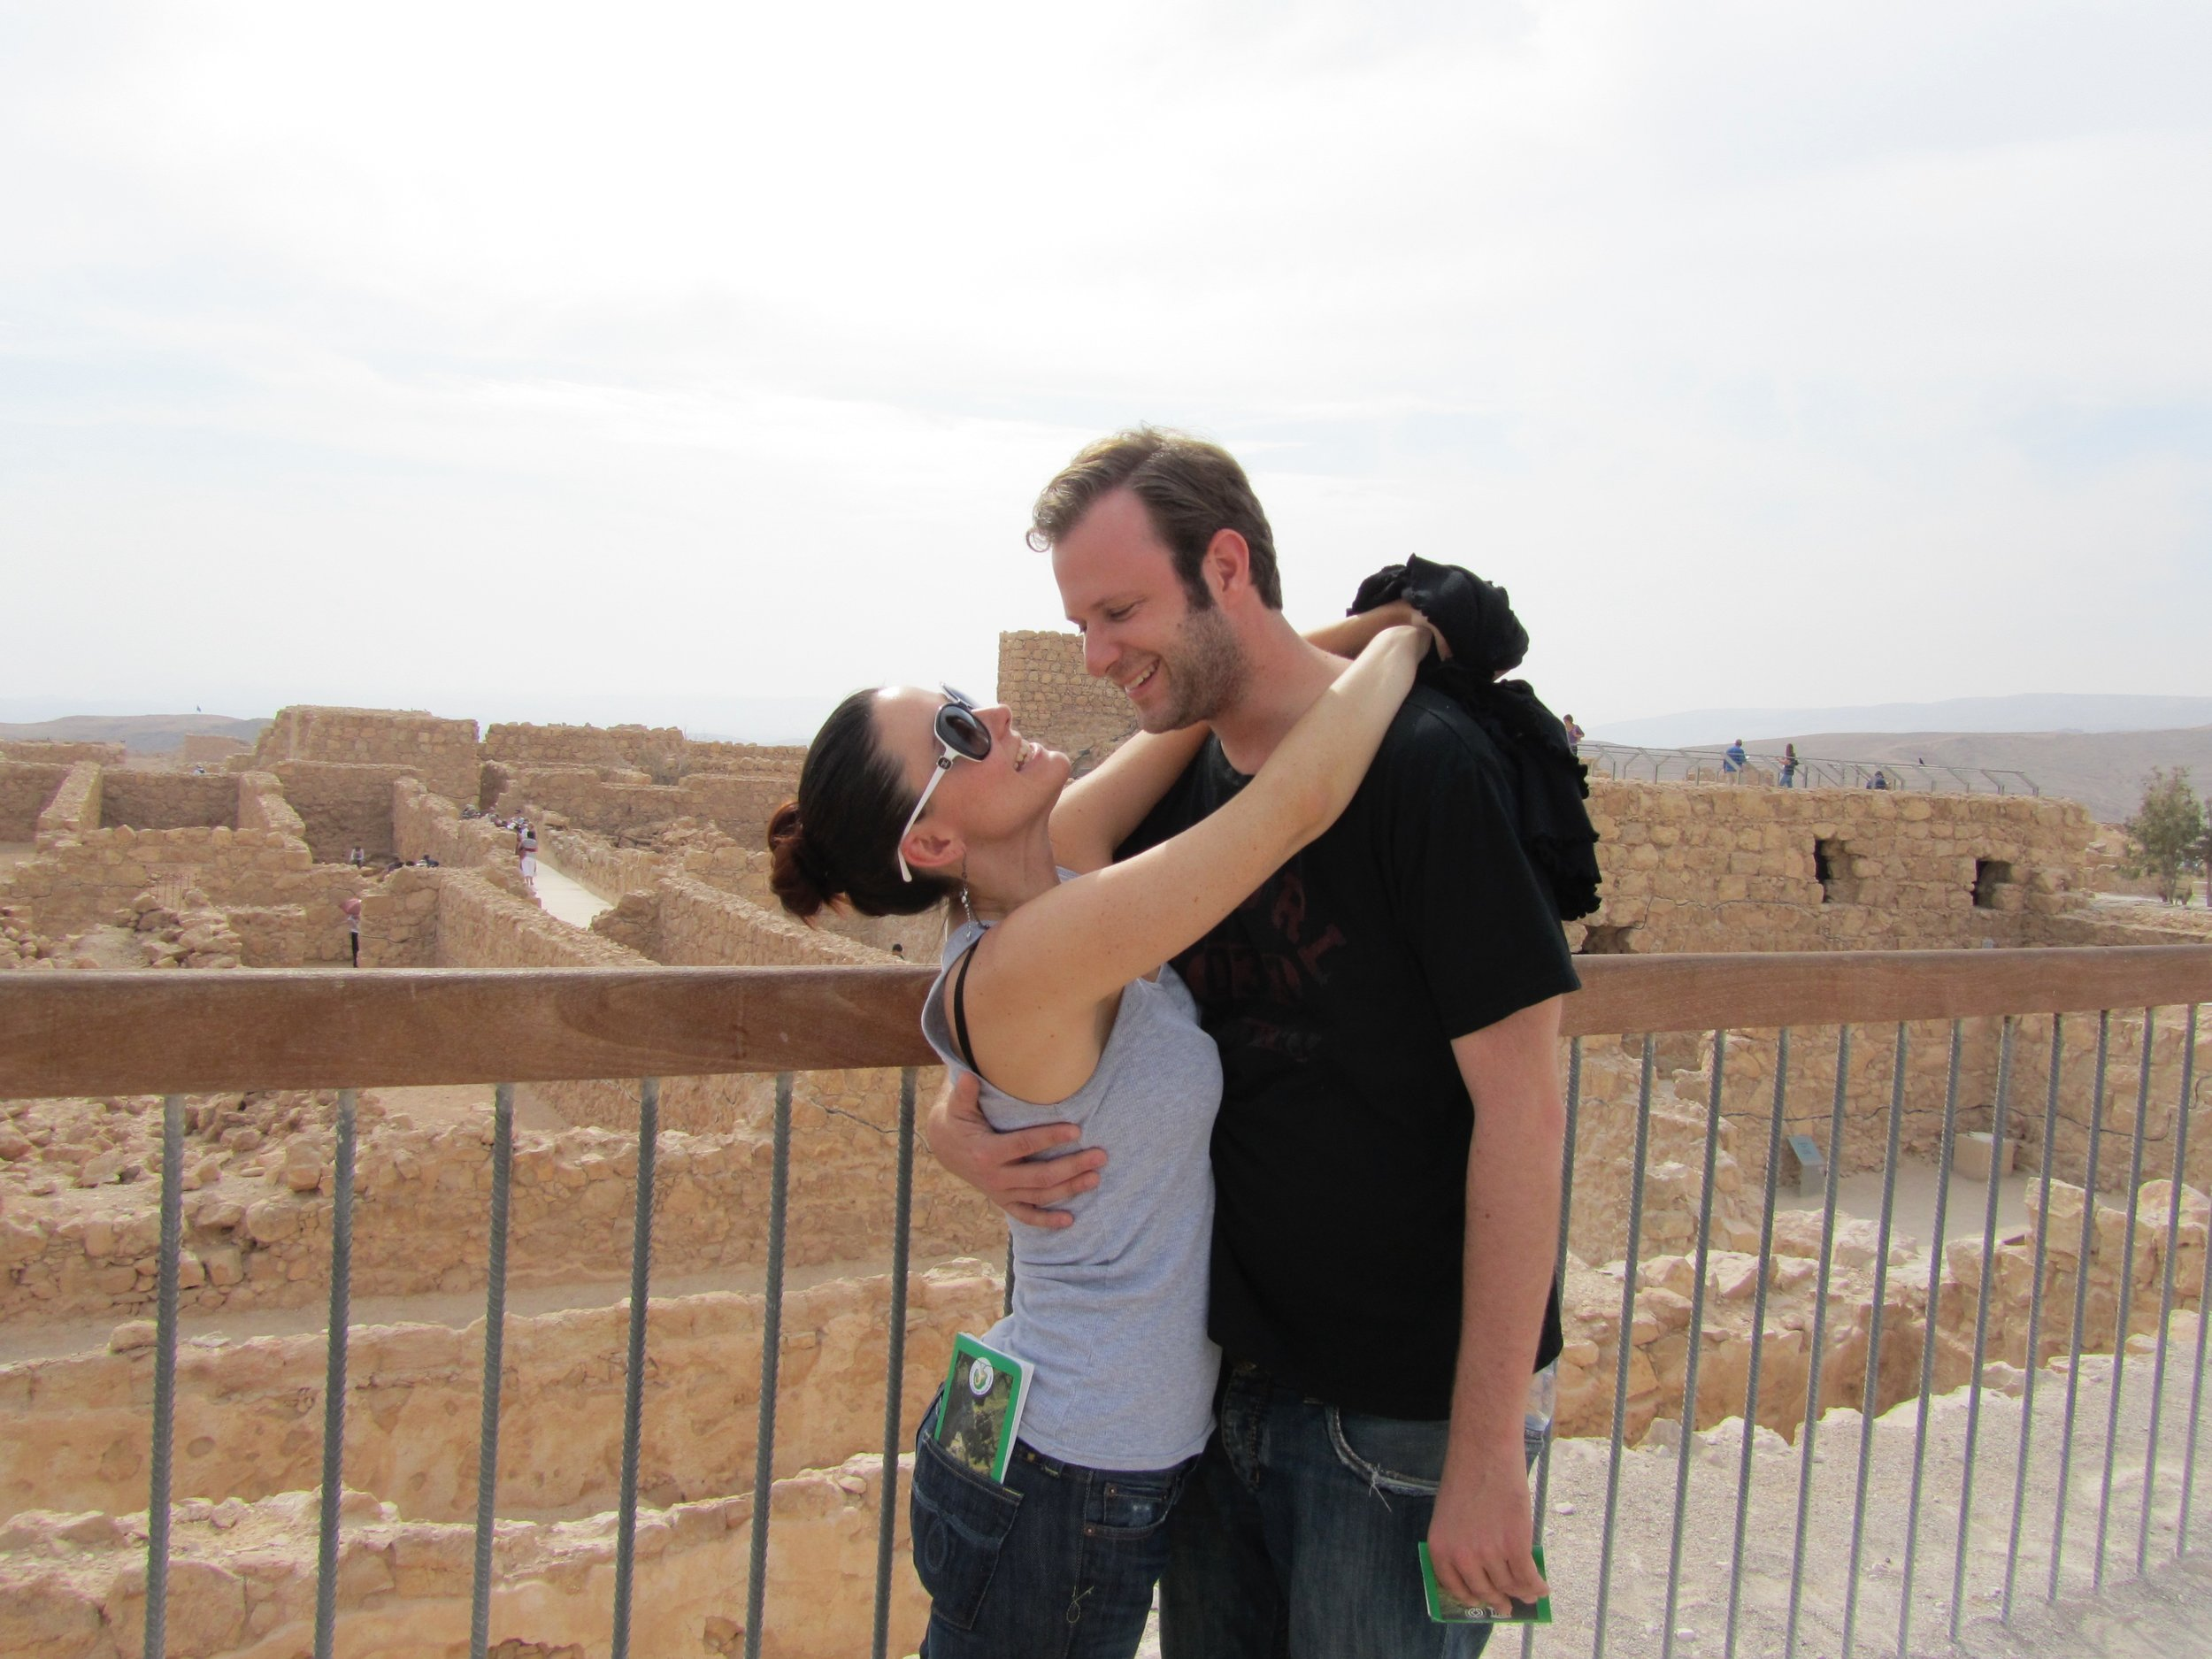 Here we are in Israel. I forget what year it was but we were skinny and well-rested so it was definitely before 2014!